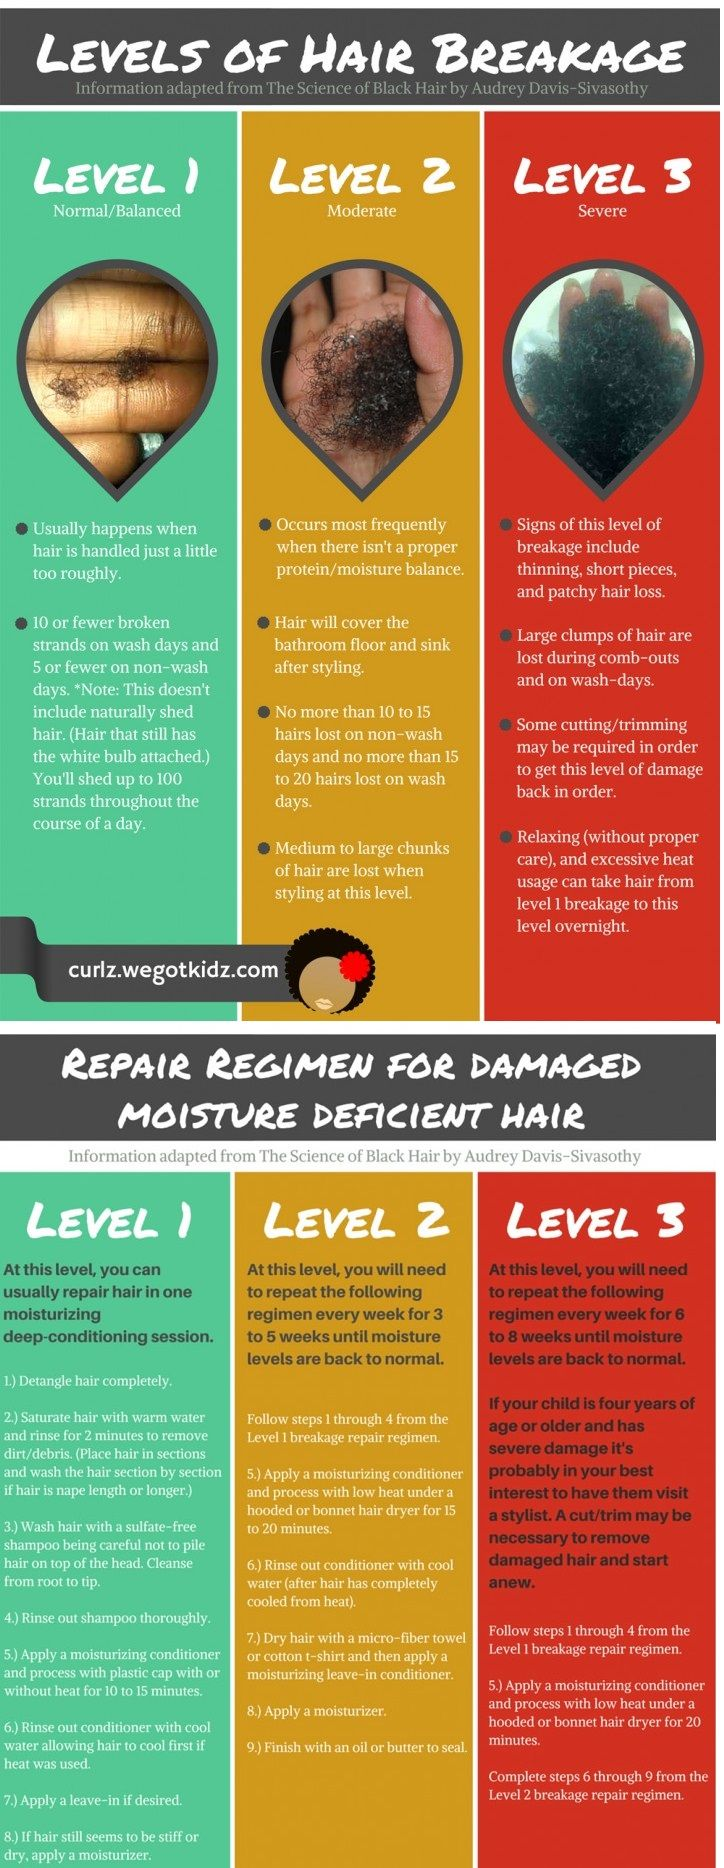 4 Natural Hair Breakage Treatment Tips